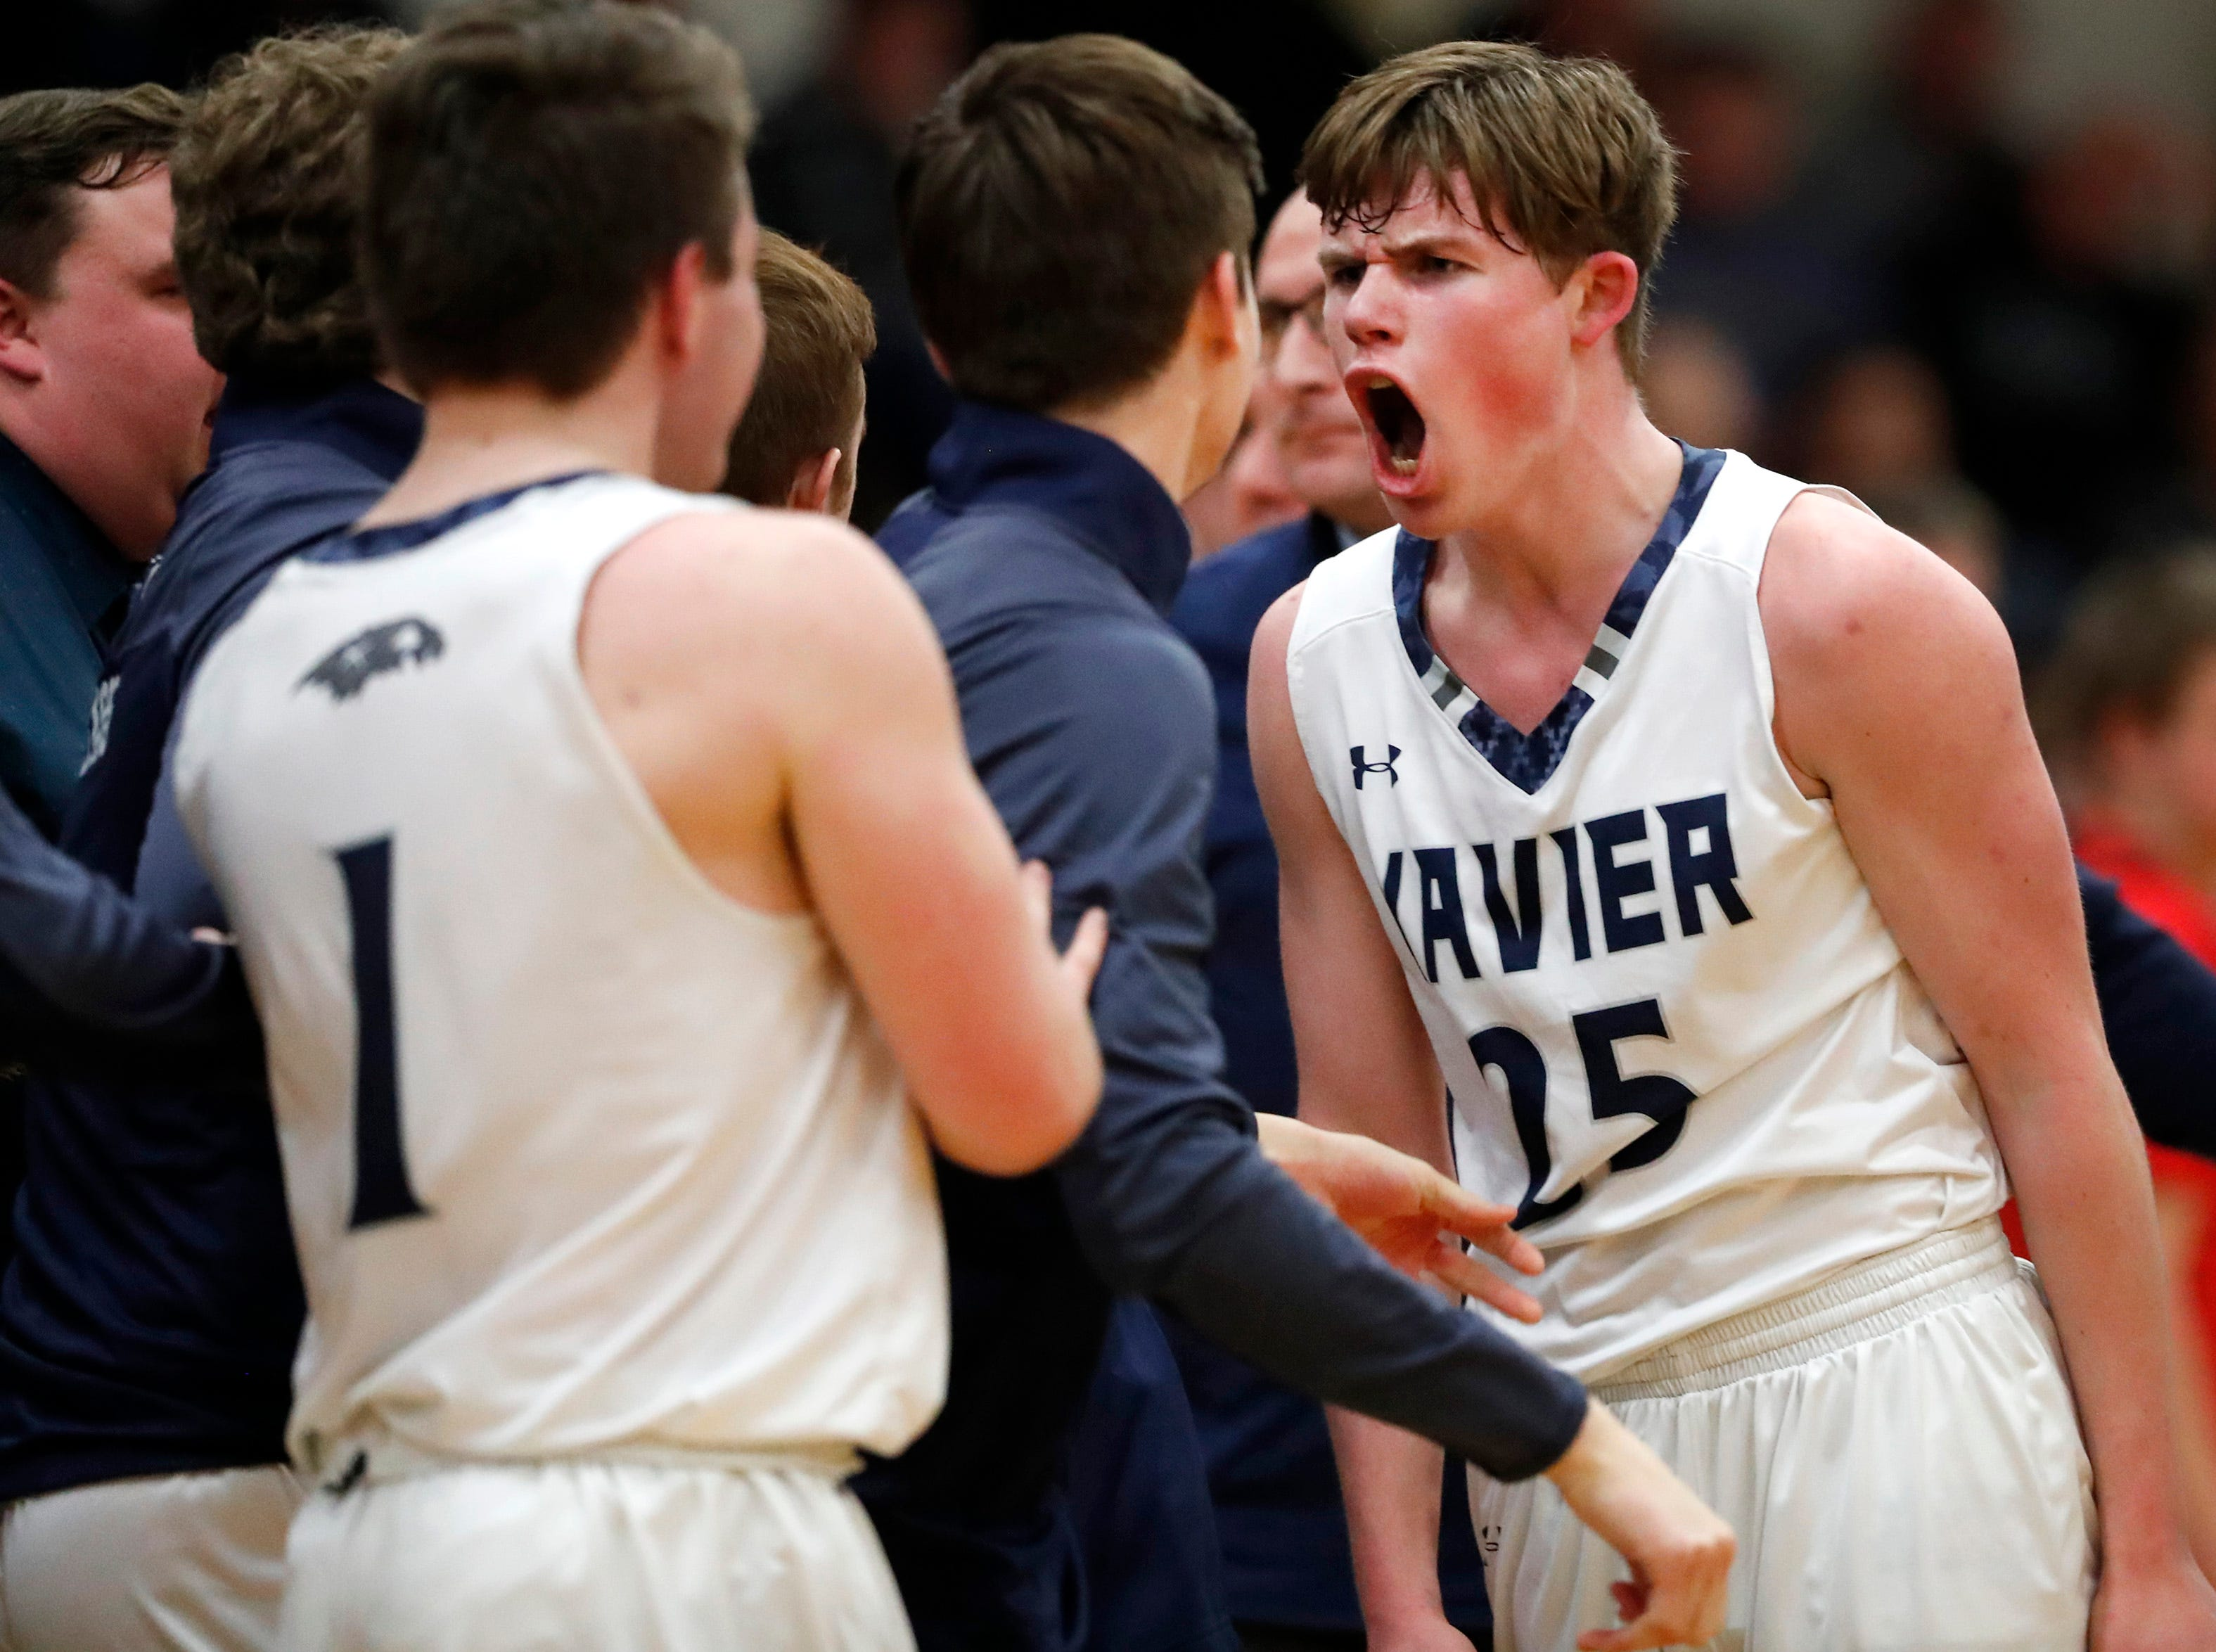 Xavier High School's Trent Twombly celebrates as he enters a timeout huddle after the Hawks went up 62-35 over Seymour Friday, Feb. 8, 2019, in Appleton, Wis. Xavier High School defeated Seymour 92-50.Danny Damiani/USA TODAY NETWORK-Wisconsin